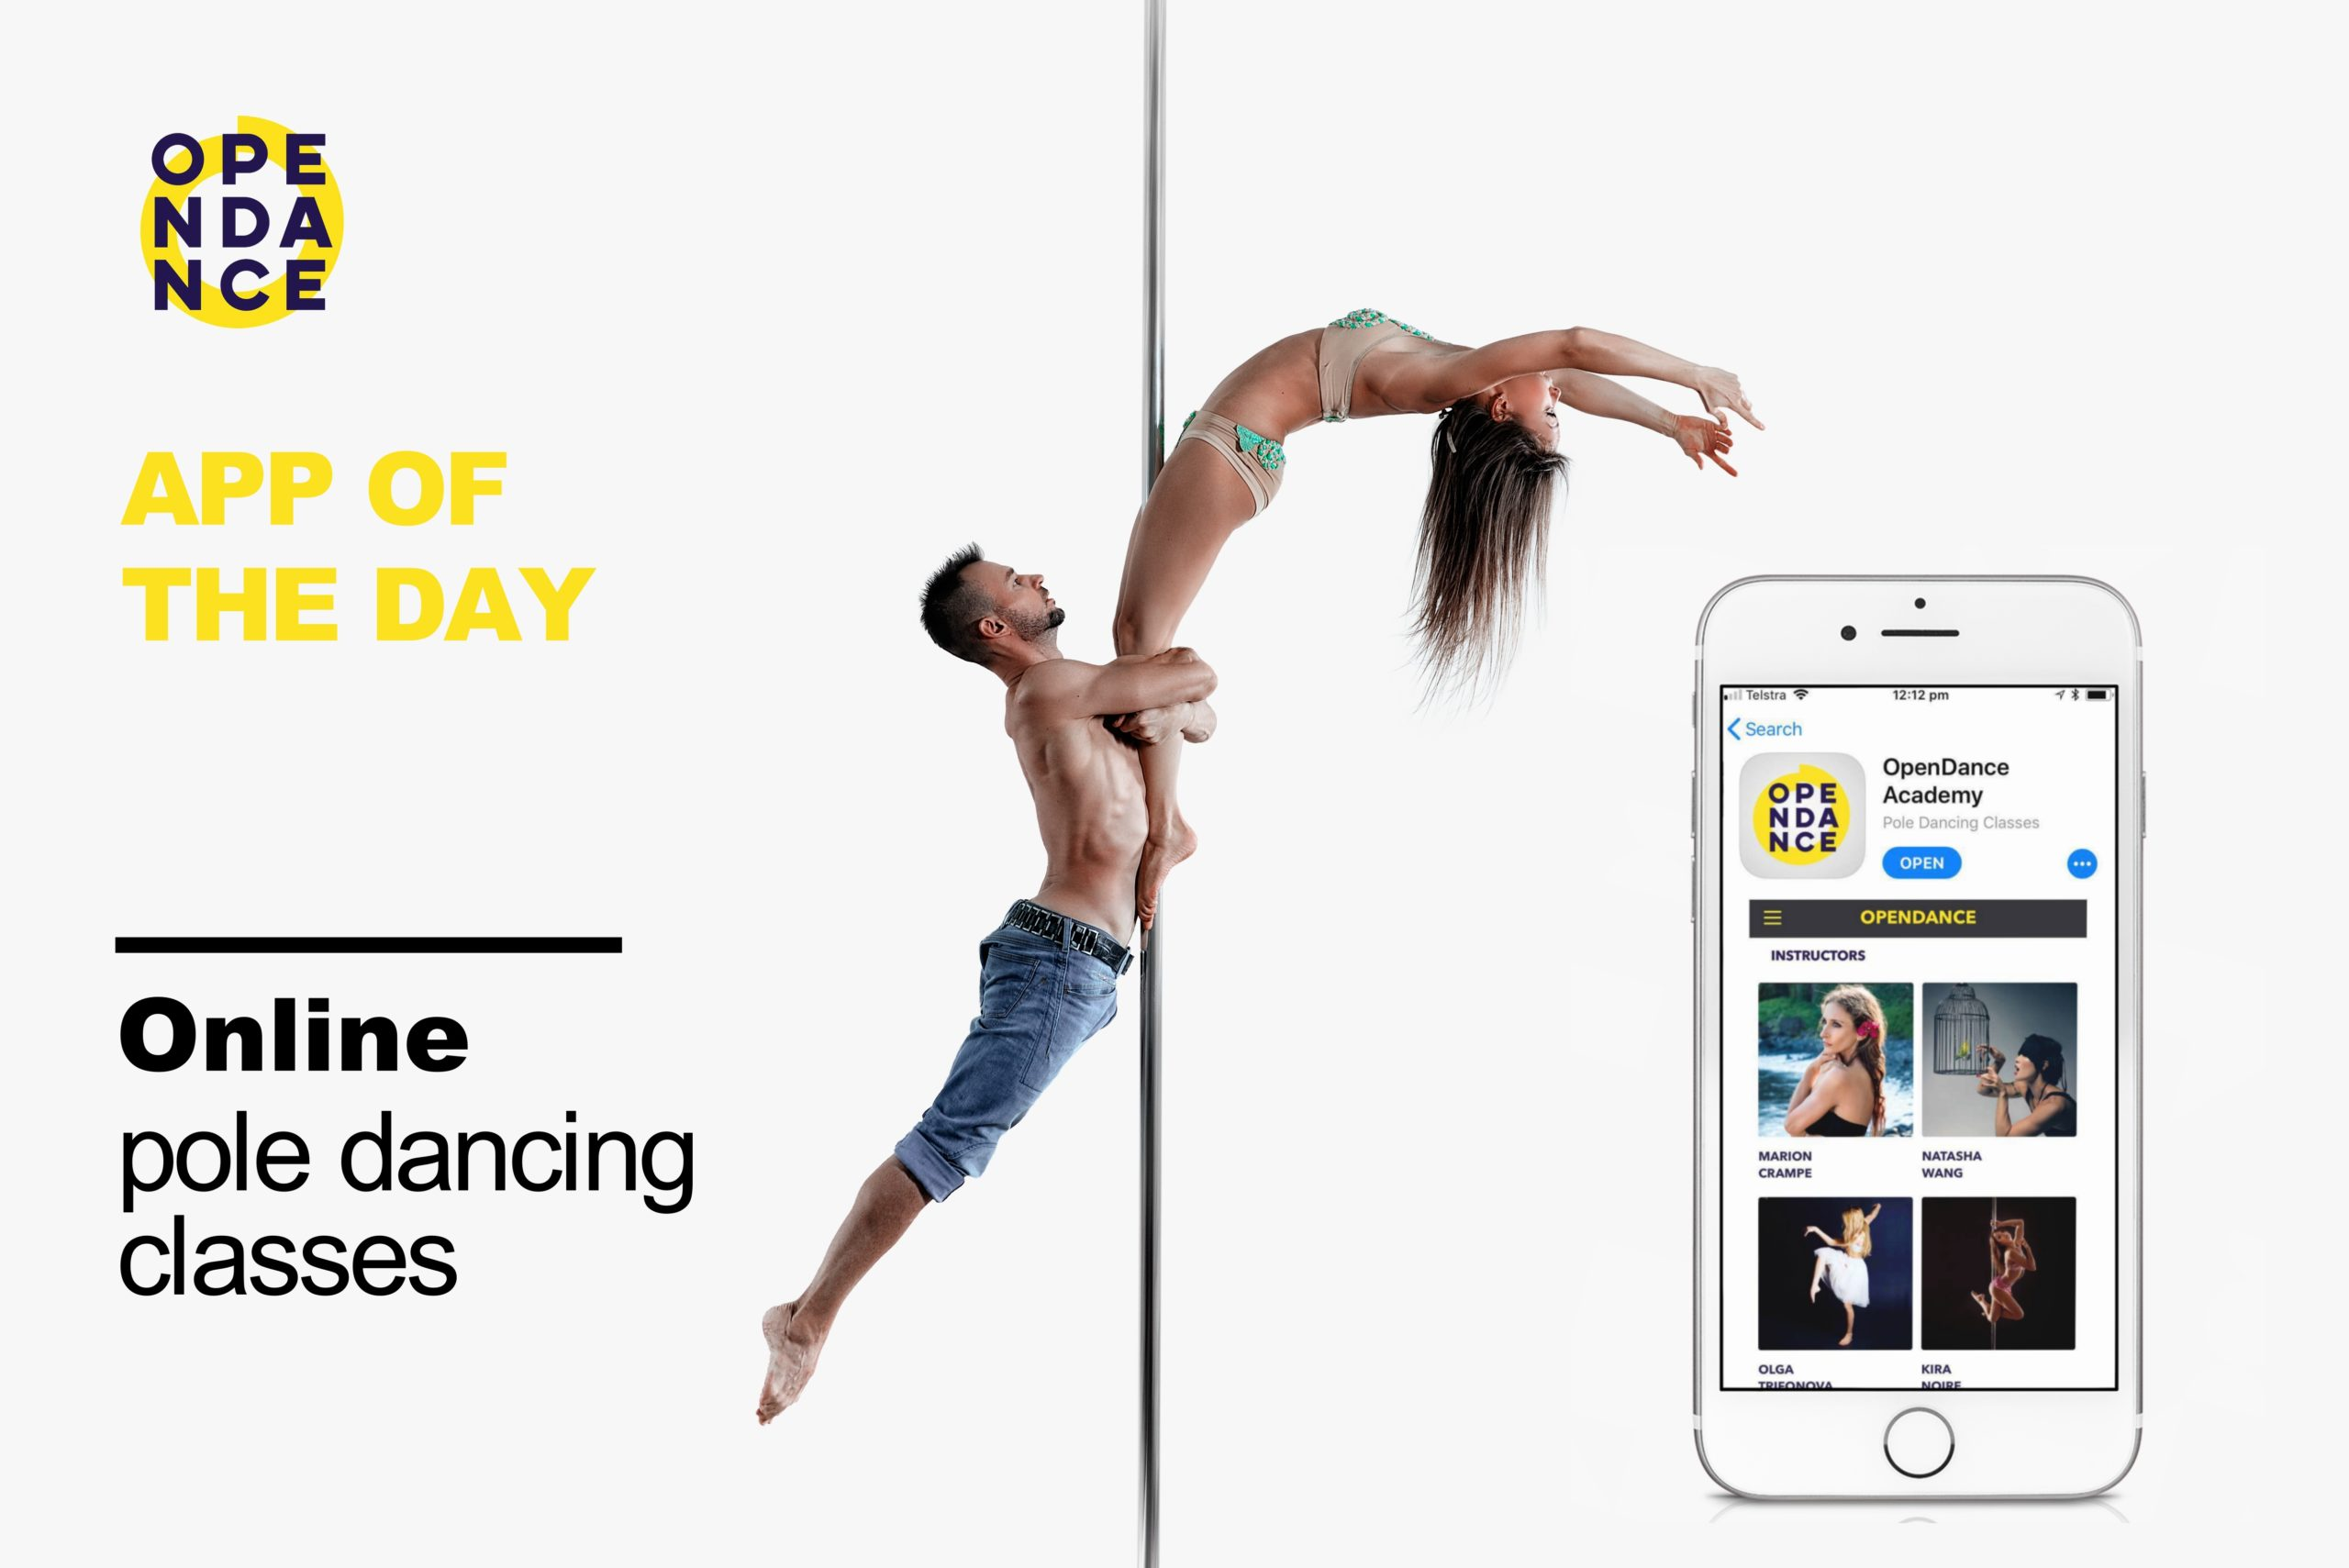 OpenDance Academy – App of the Day 2021